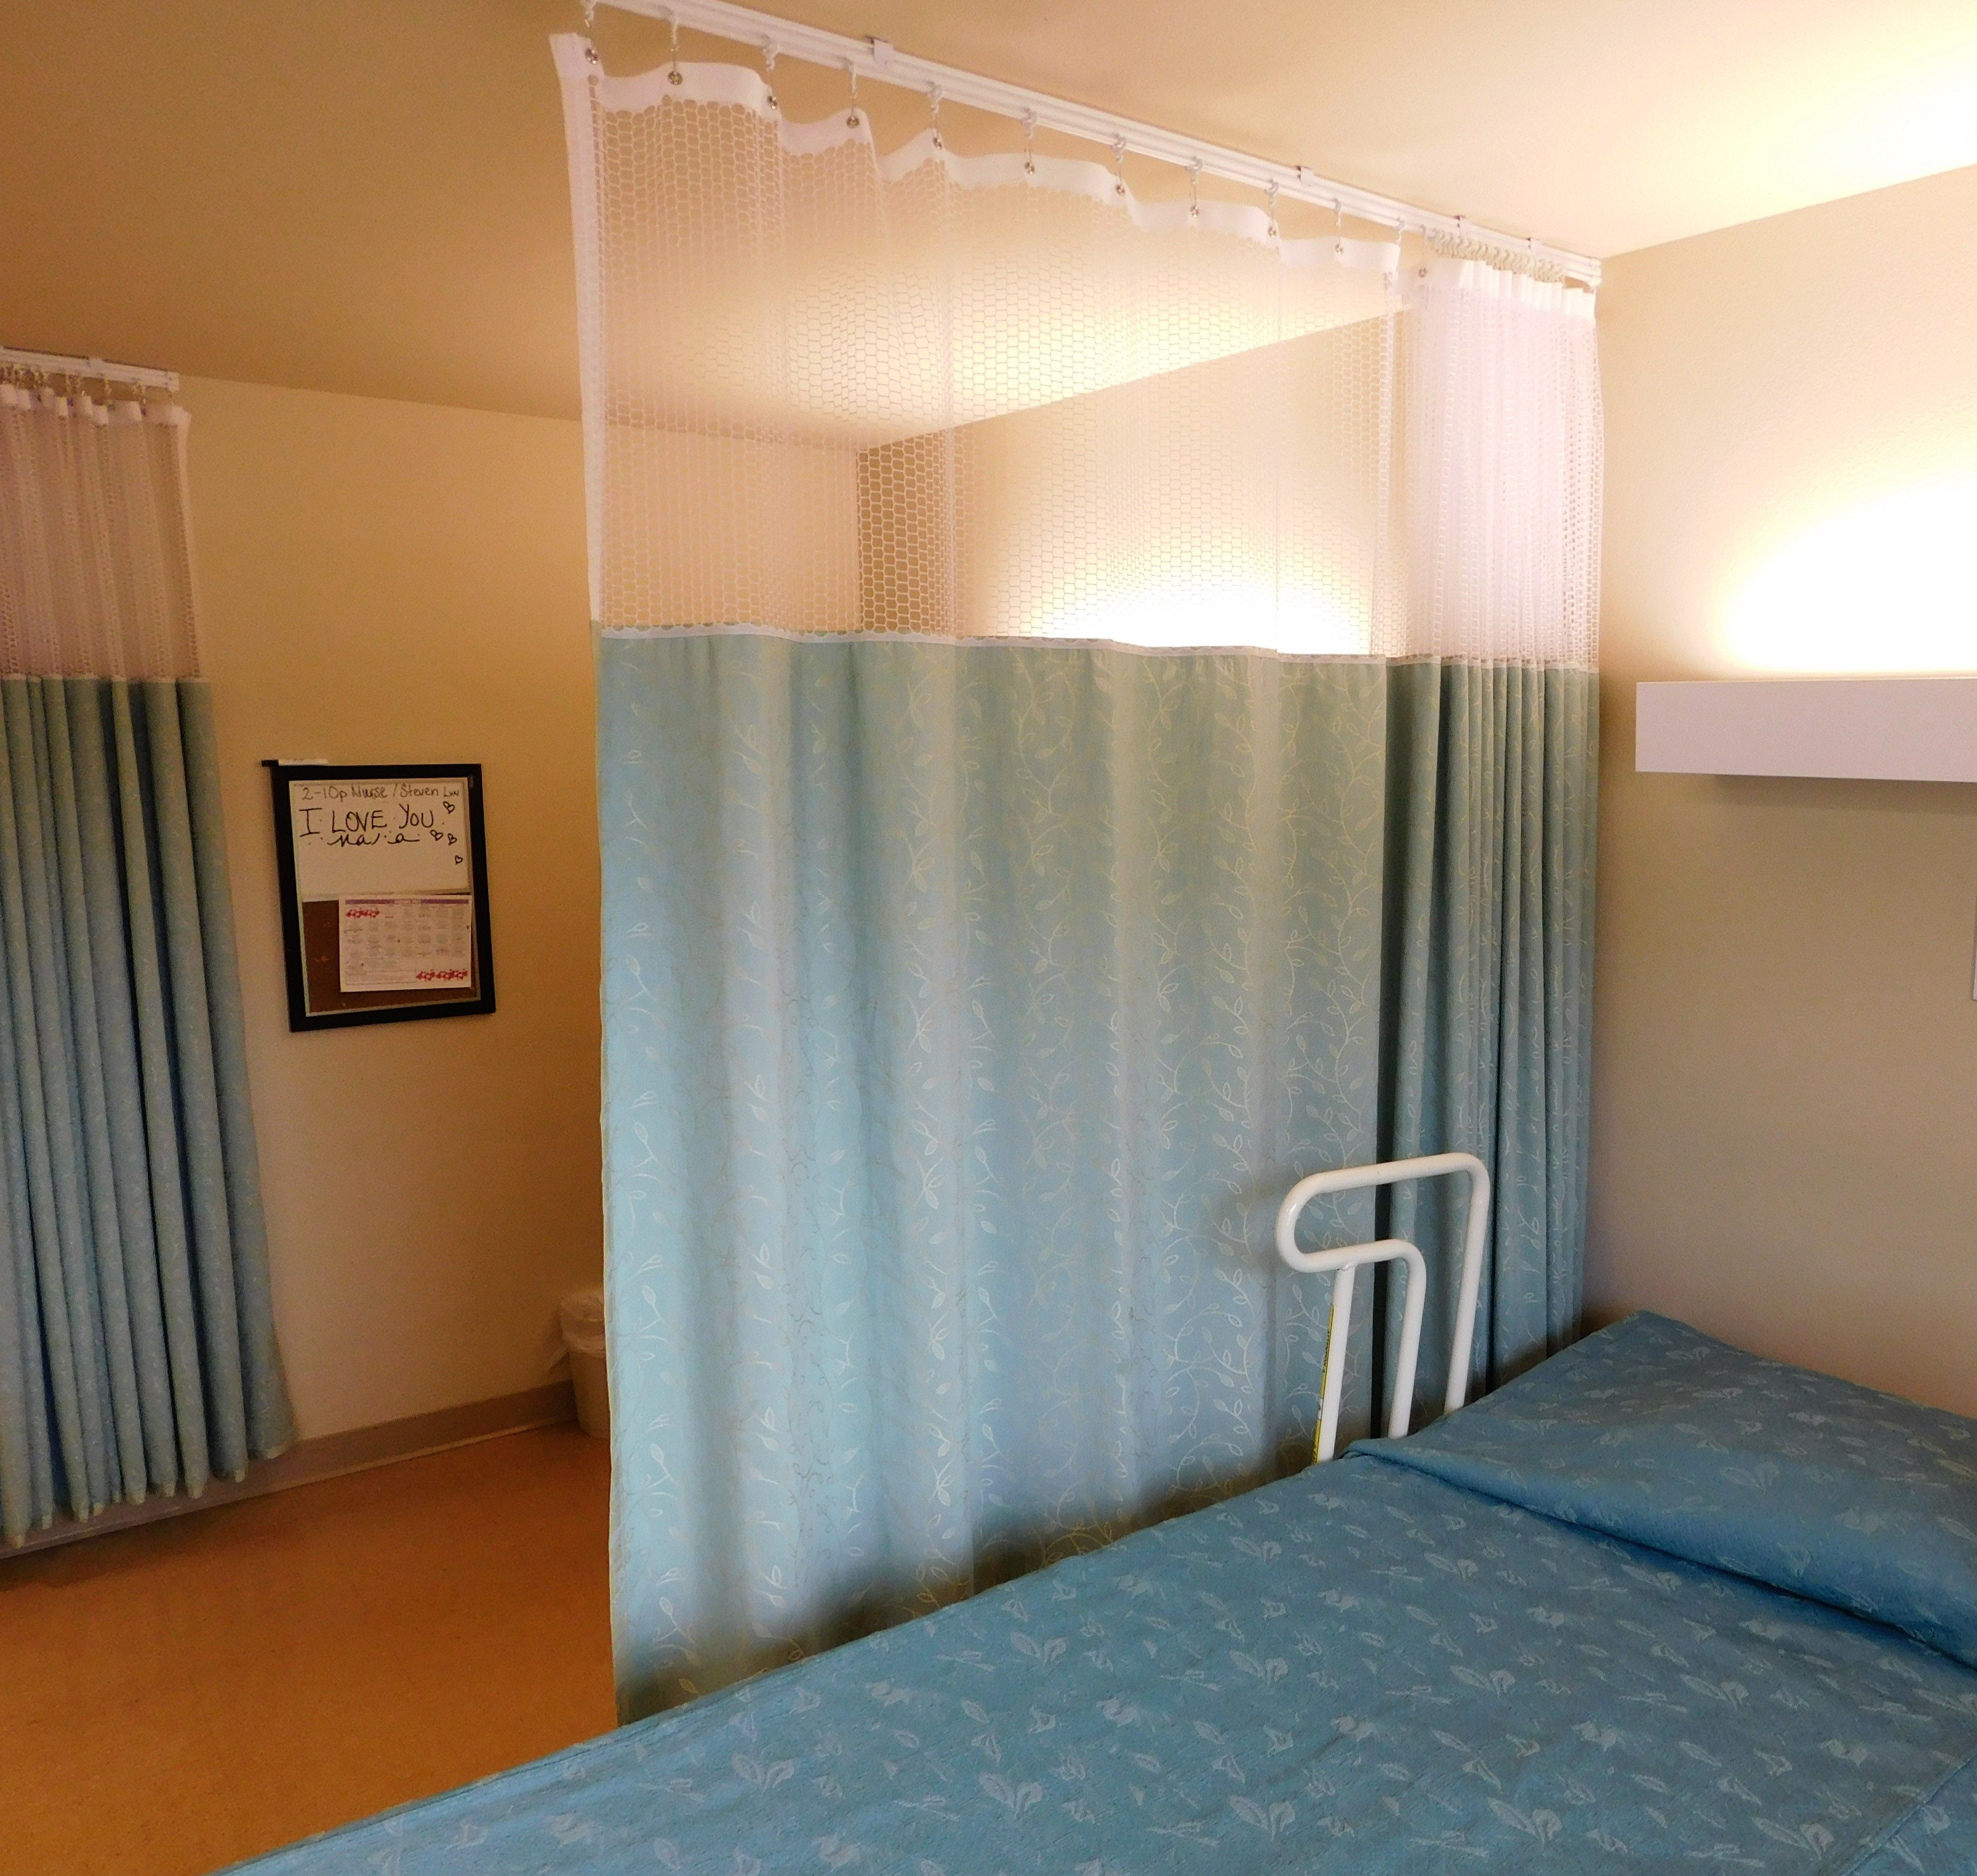 Privacy Cubicle Curtains Are Durable Top Quality And Feature A Triple Thick 1 5 Inch Header Reinforced With A Middle Layer O Curtains Cubicle Privacy Curtains